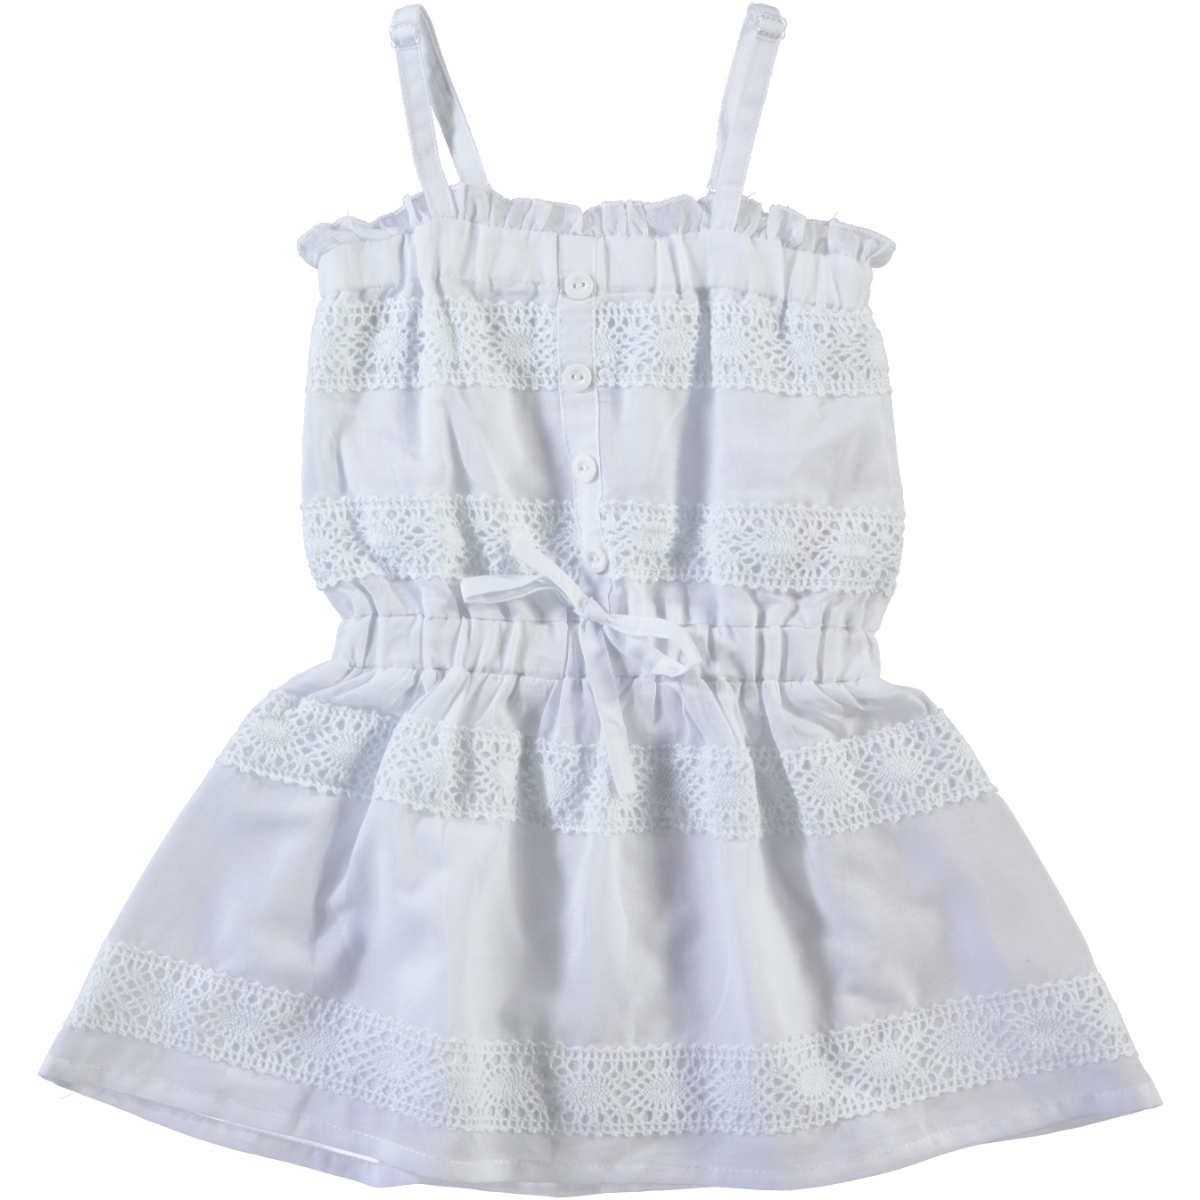 Missiva Girls White Girls Dress 2-5 Years Civil